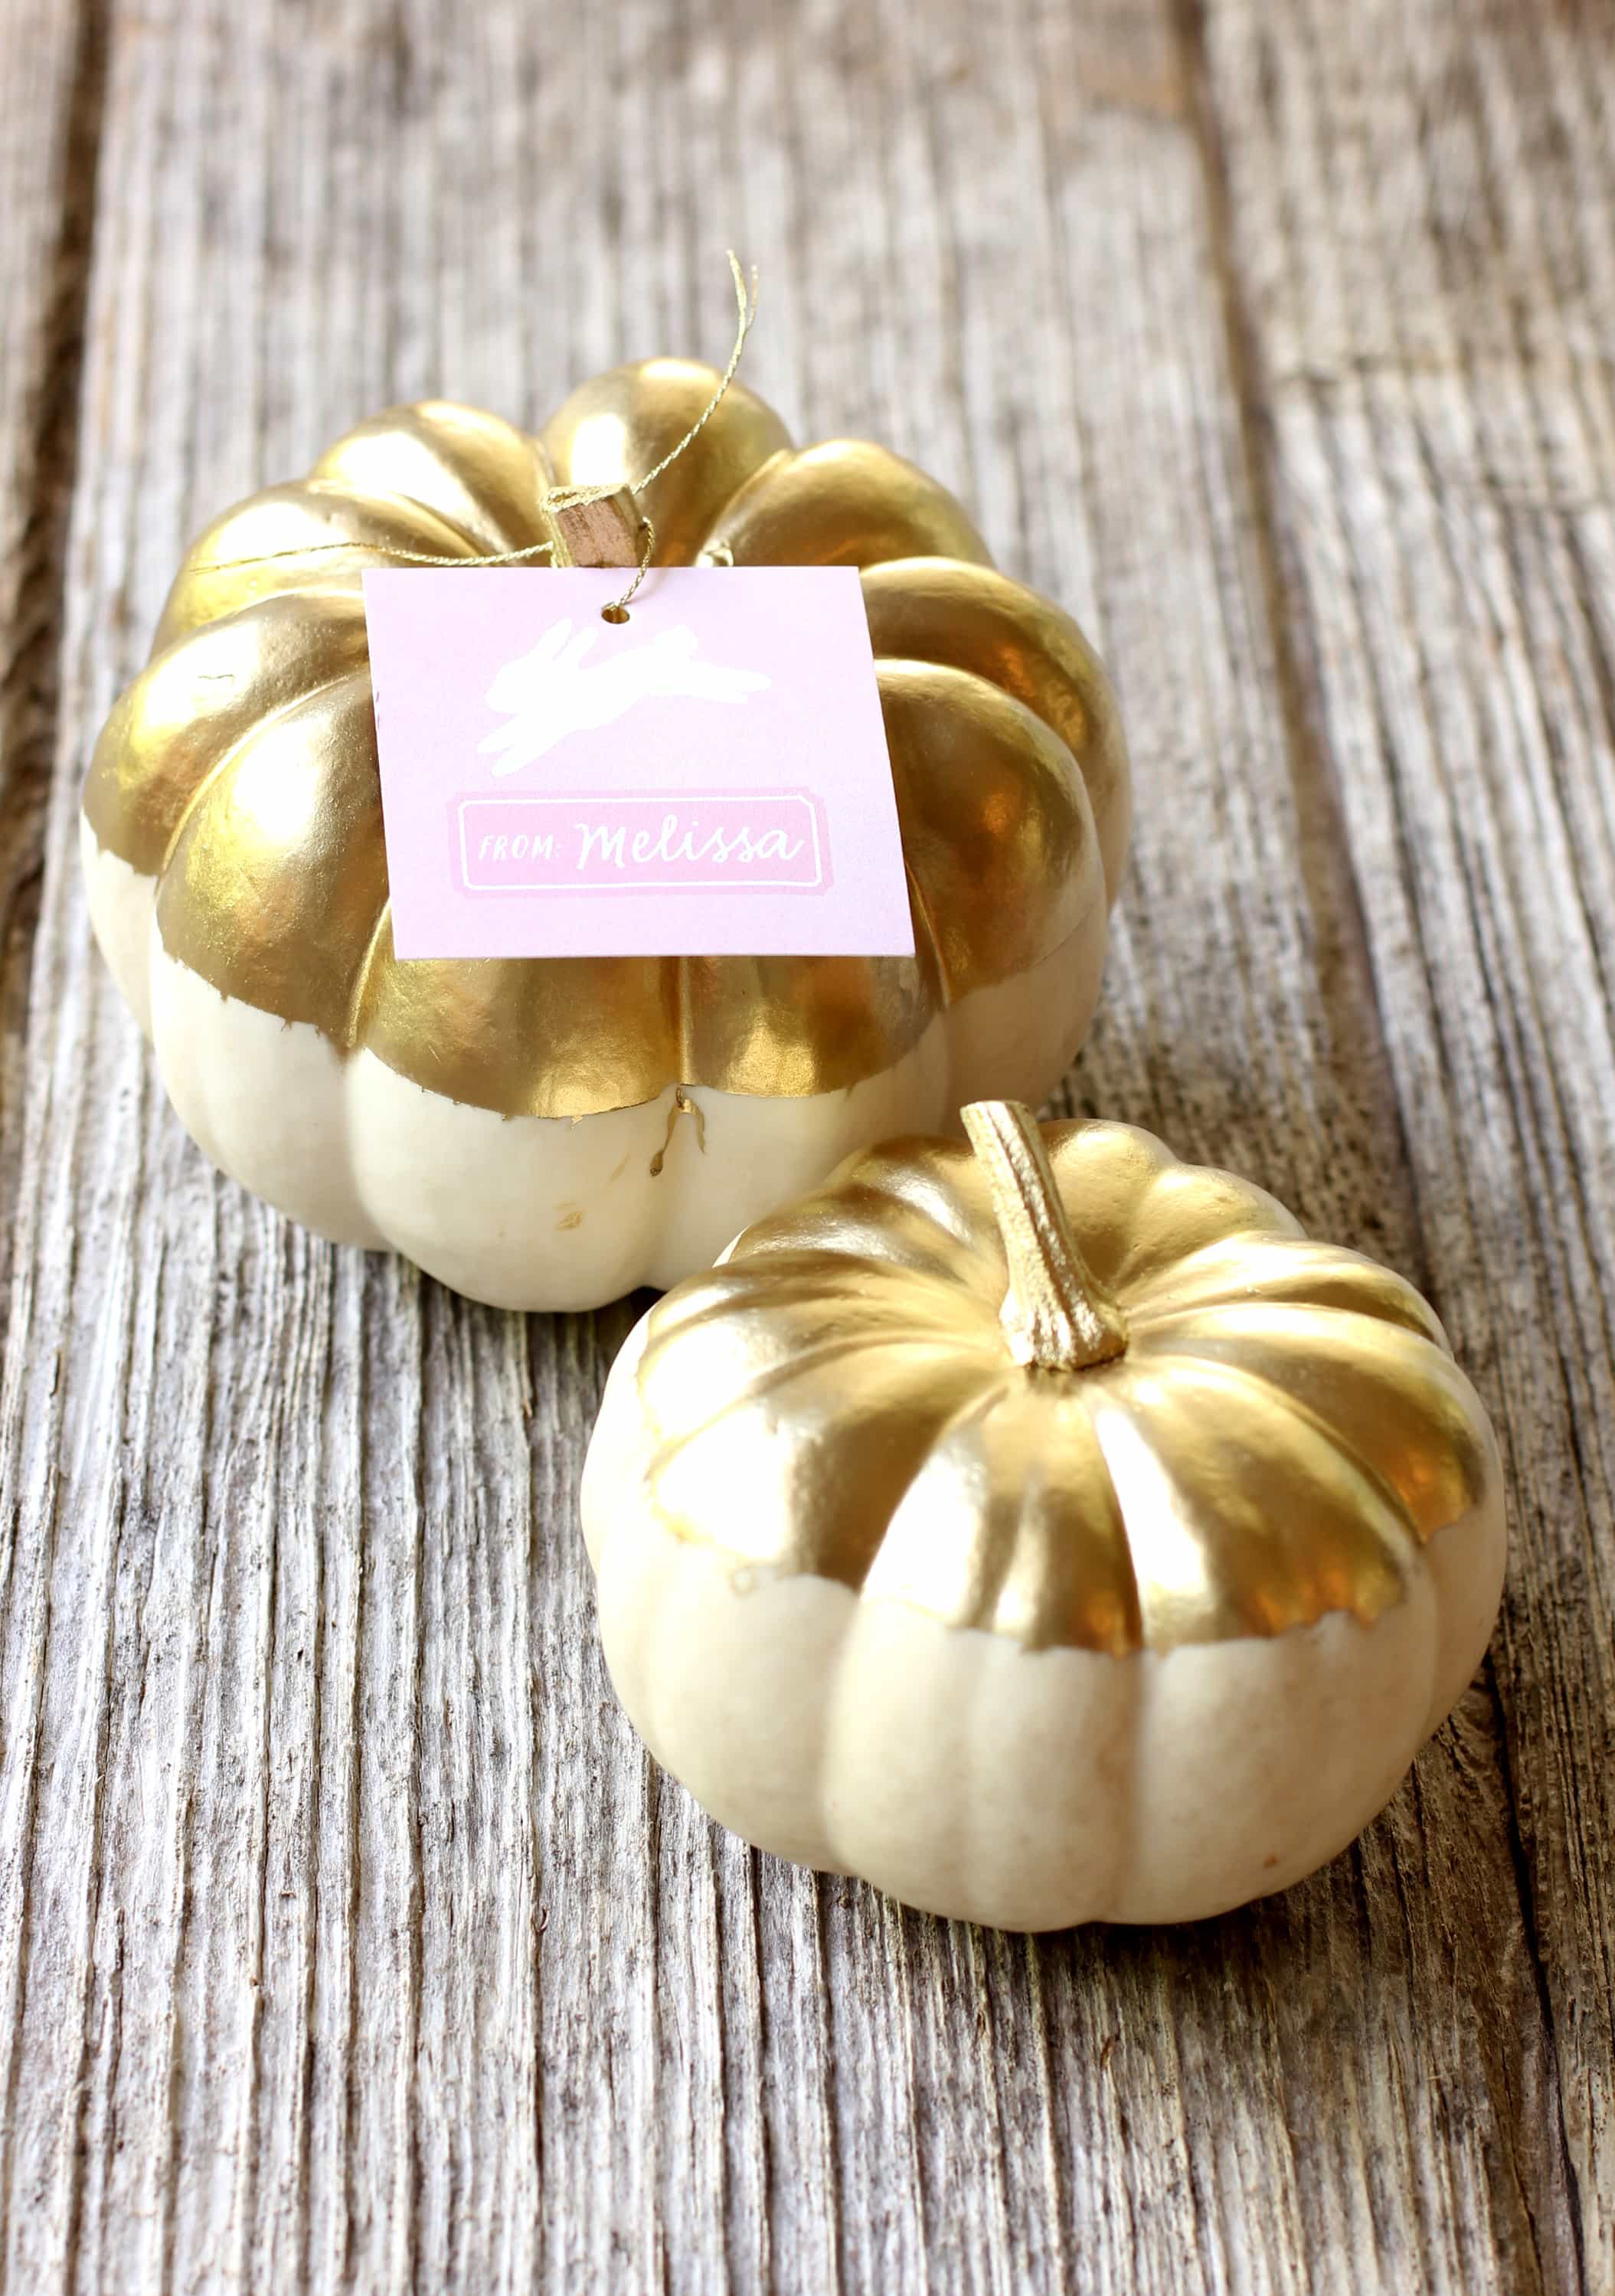 Fall White Pumpkins Wallpaper Diy Gold Metallic Pumpkin Party Favor Tutorial Best